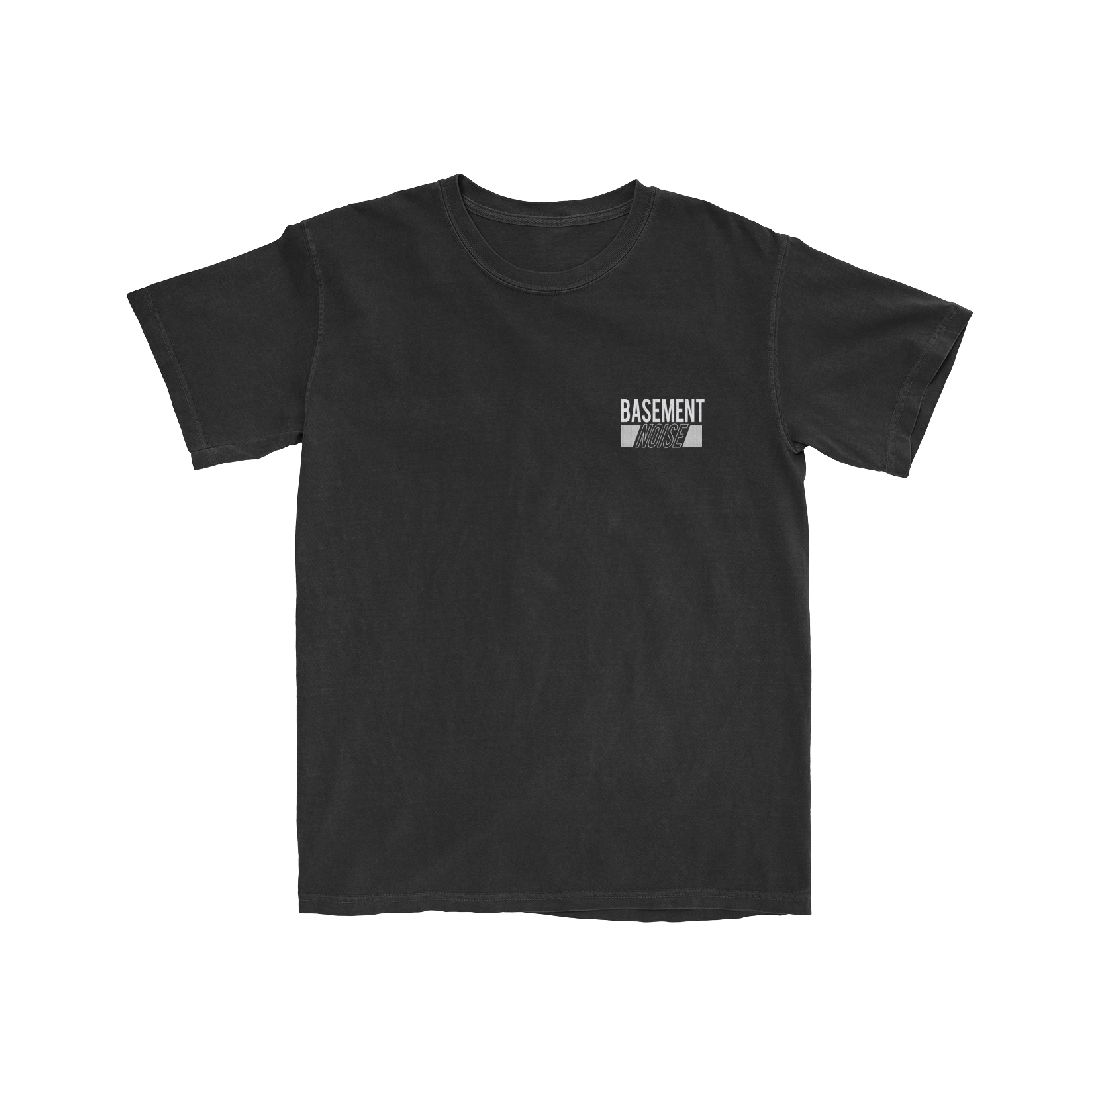 BASEMENT NOISE T-SHIRT